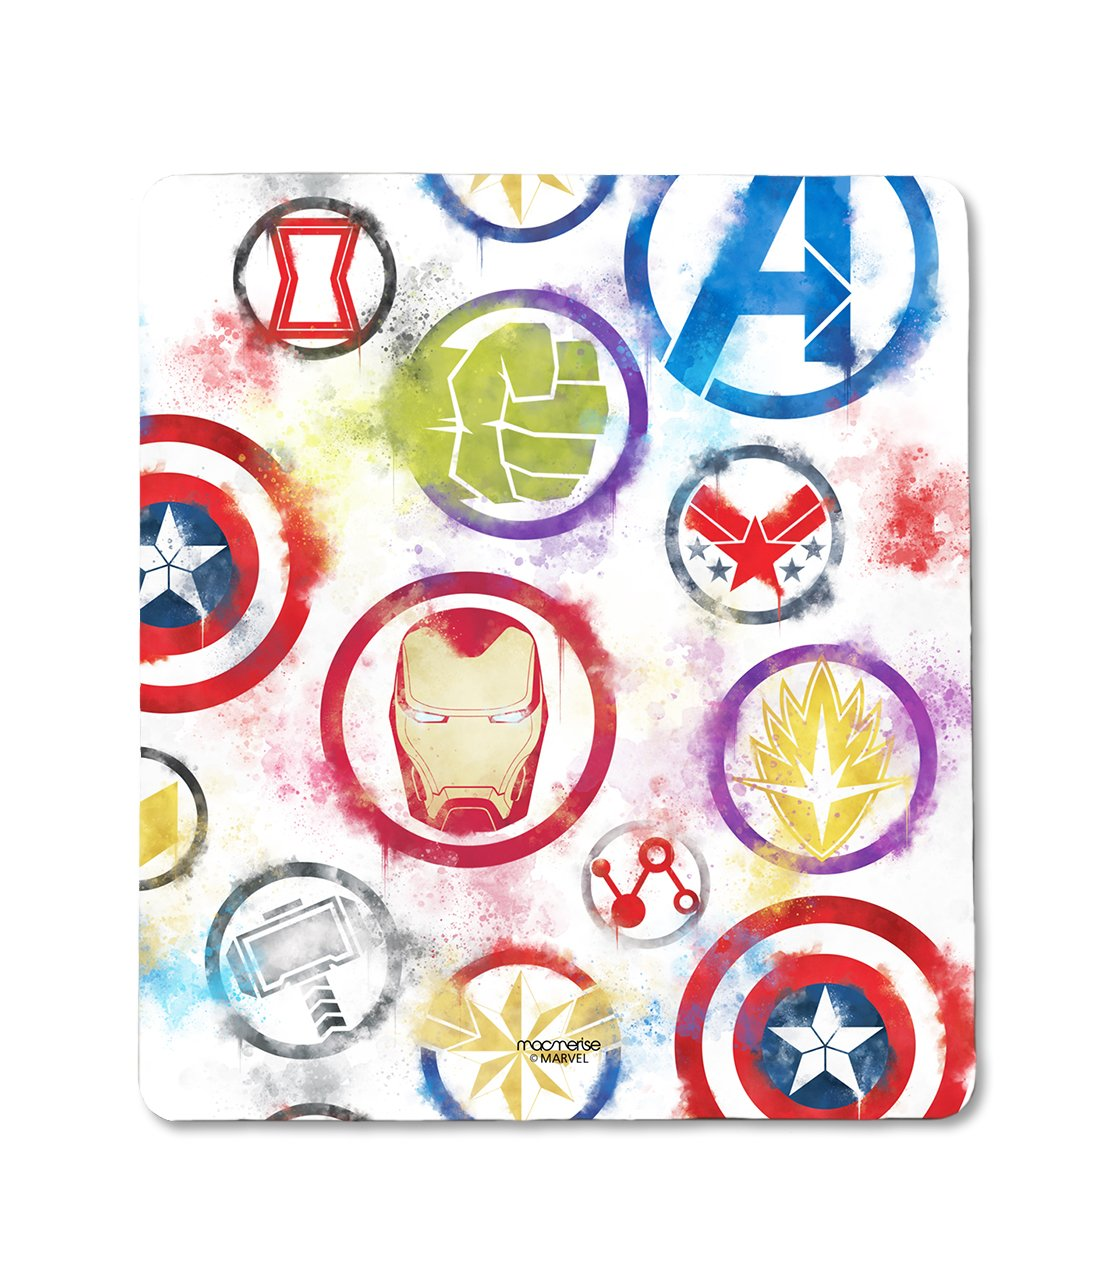 Avengers Icons Graffiti - Mouse Pad by Macmerise -Macmerise - India - www.superherotoystore.com